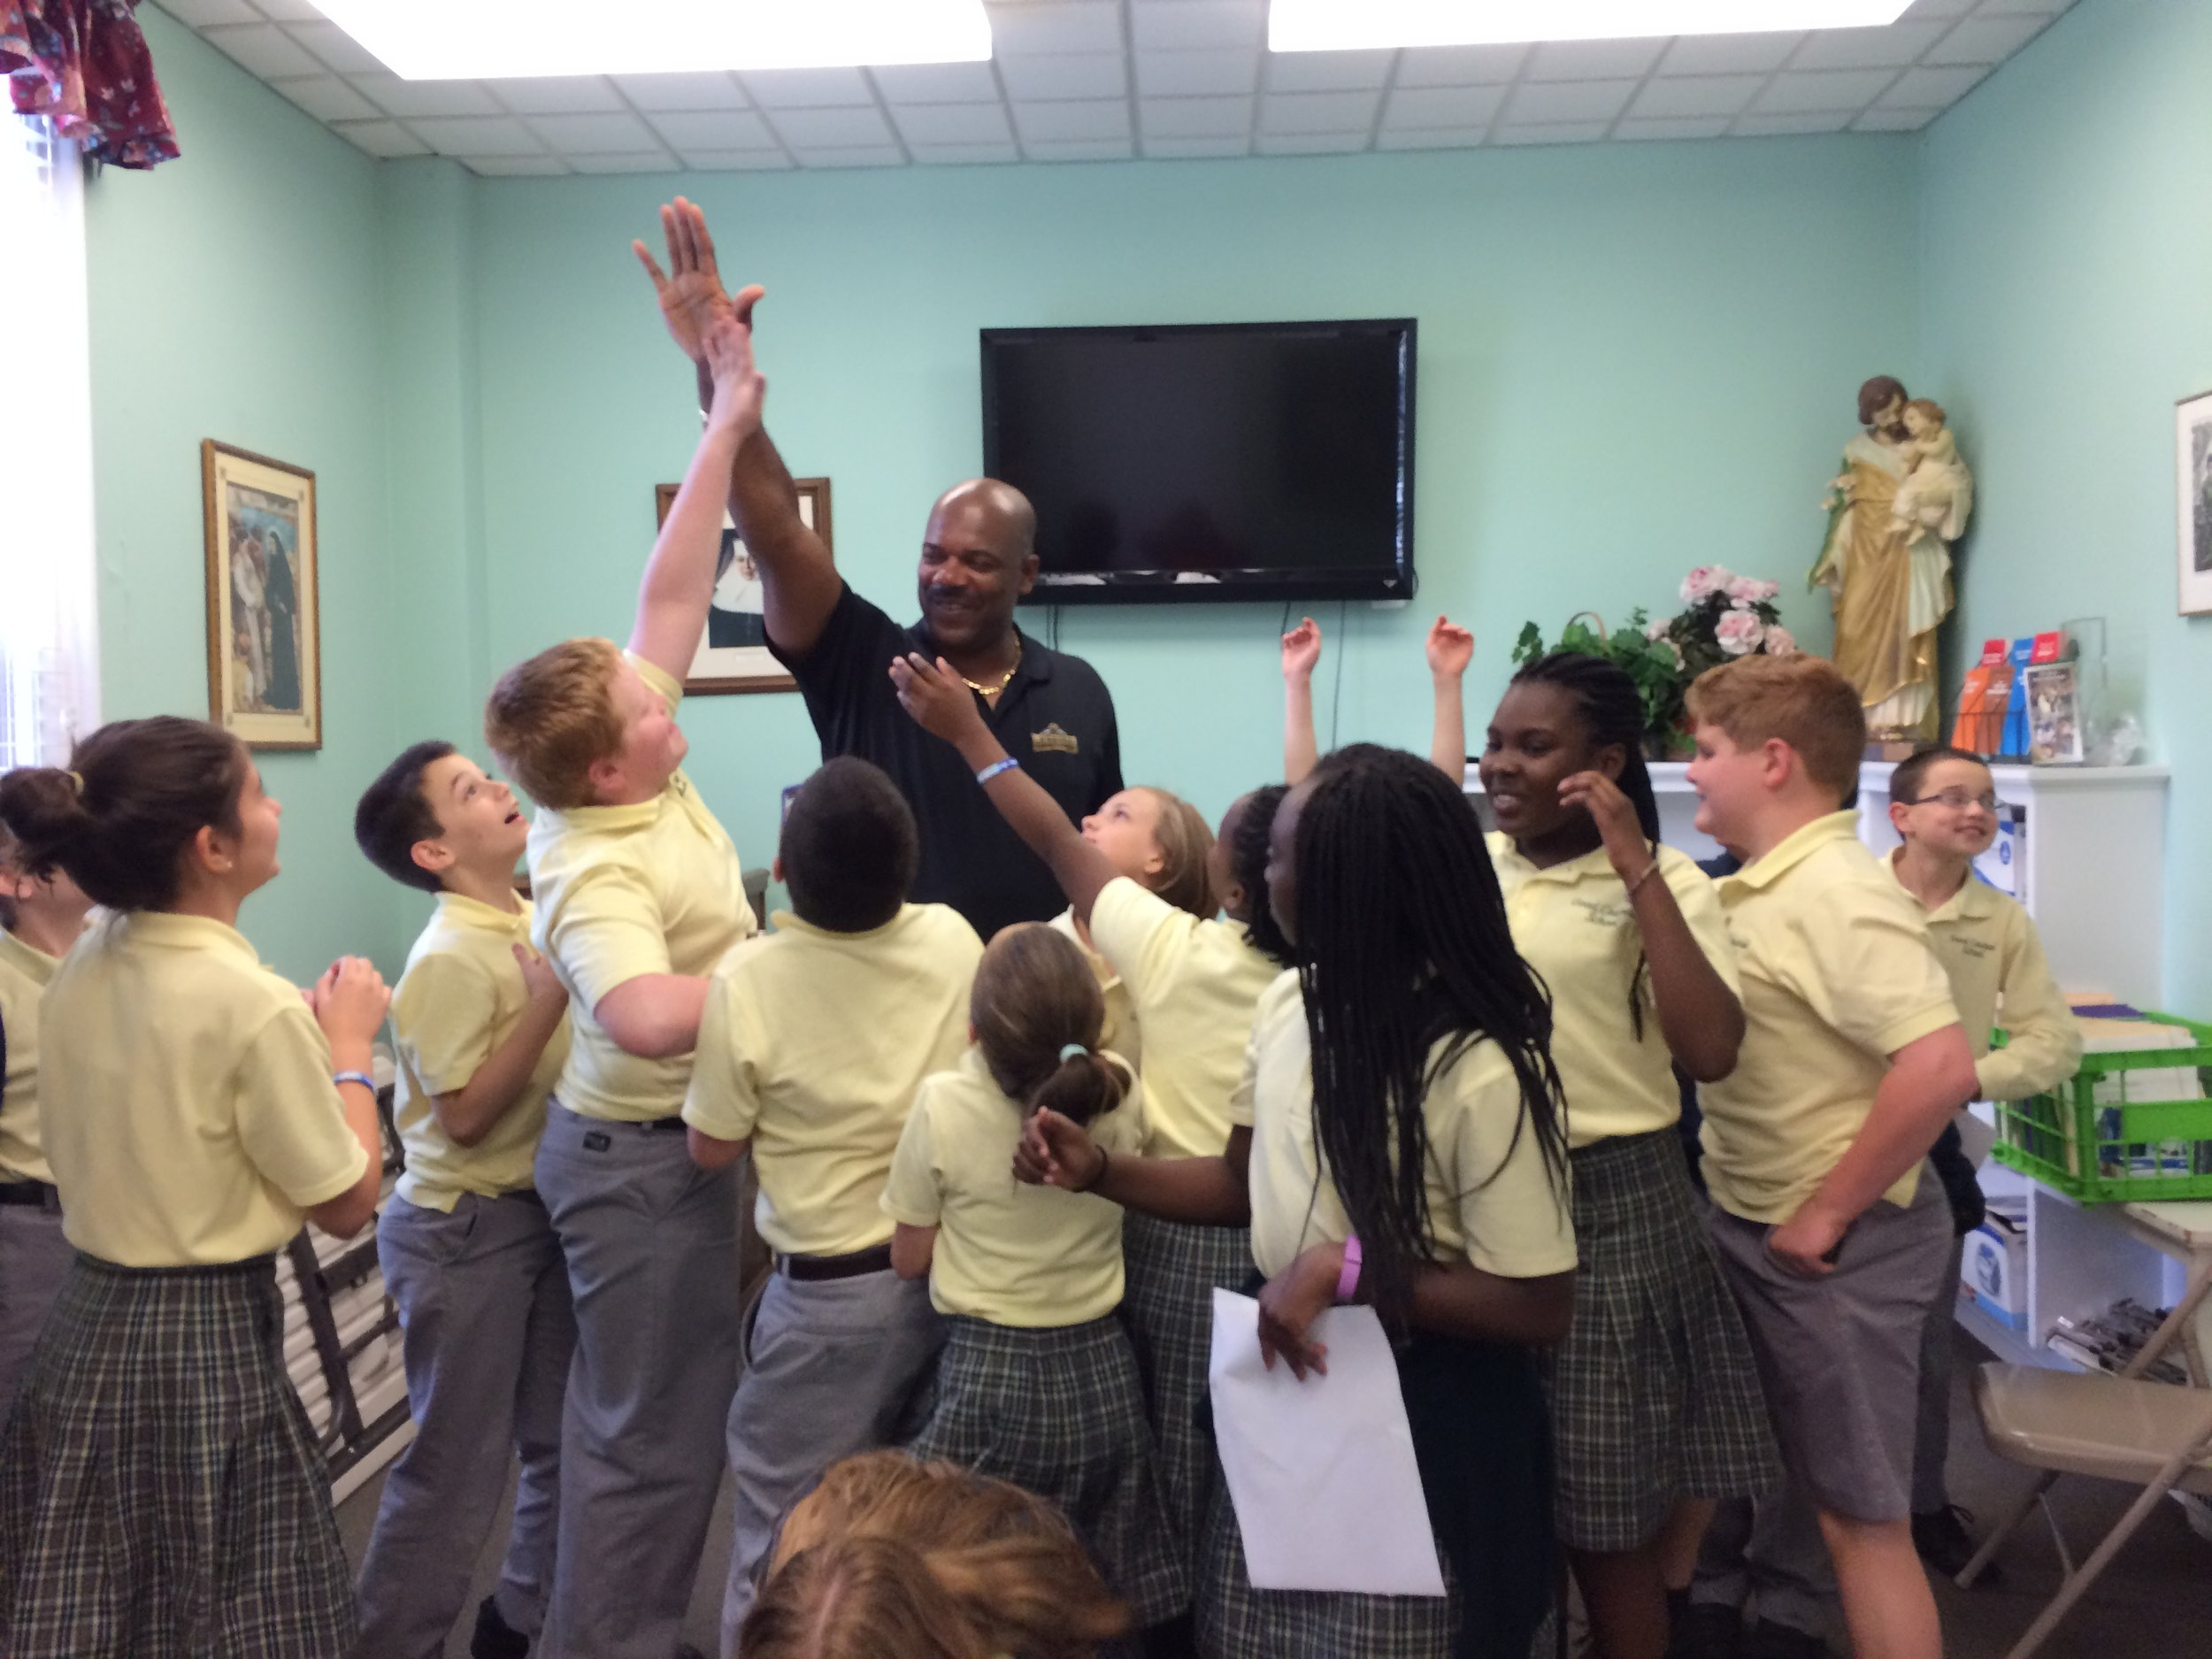 """Mr. Fred Baxter, two -time NFL Superbowl winner, interacts with members of the Mission Club on the topic of """"Making a Difference in the World Through Service."""""""